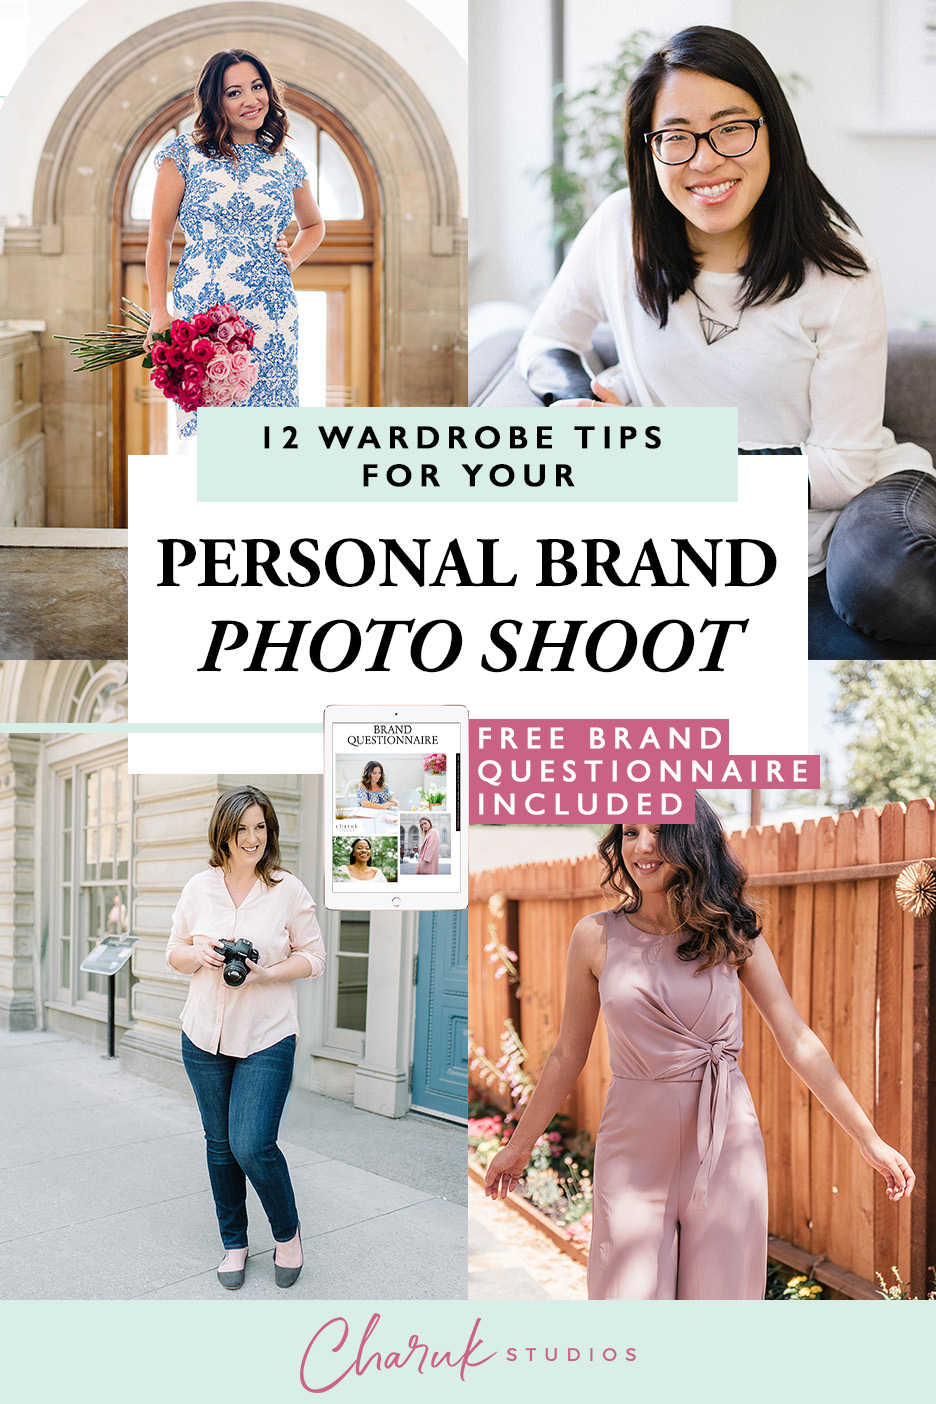 12 Wardrobe Tips for Your Personal Brand Photo Shoot by Charuk Studios